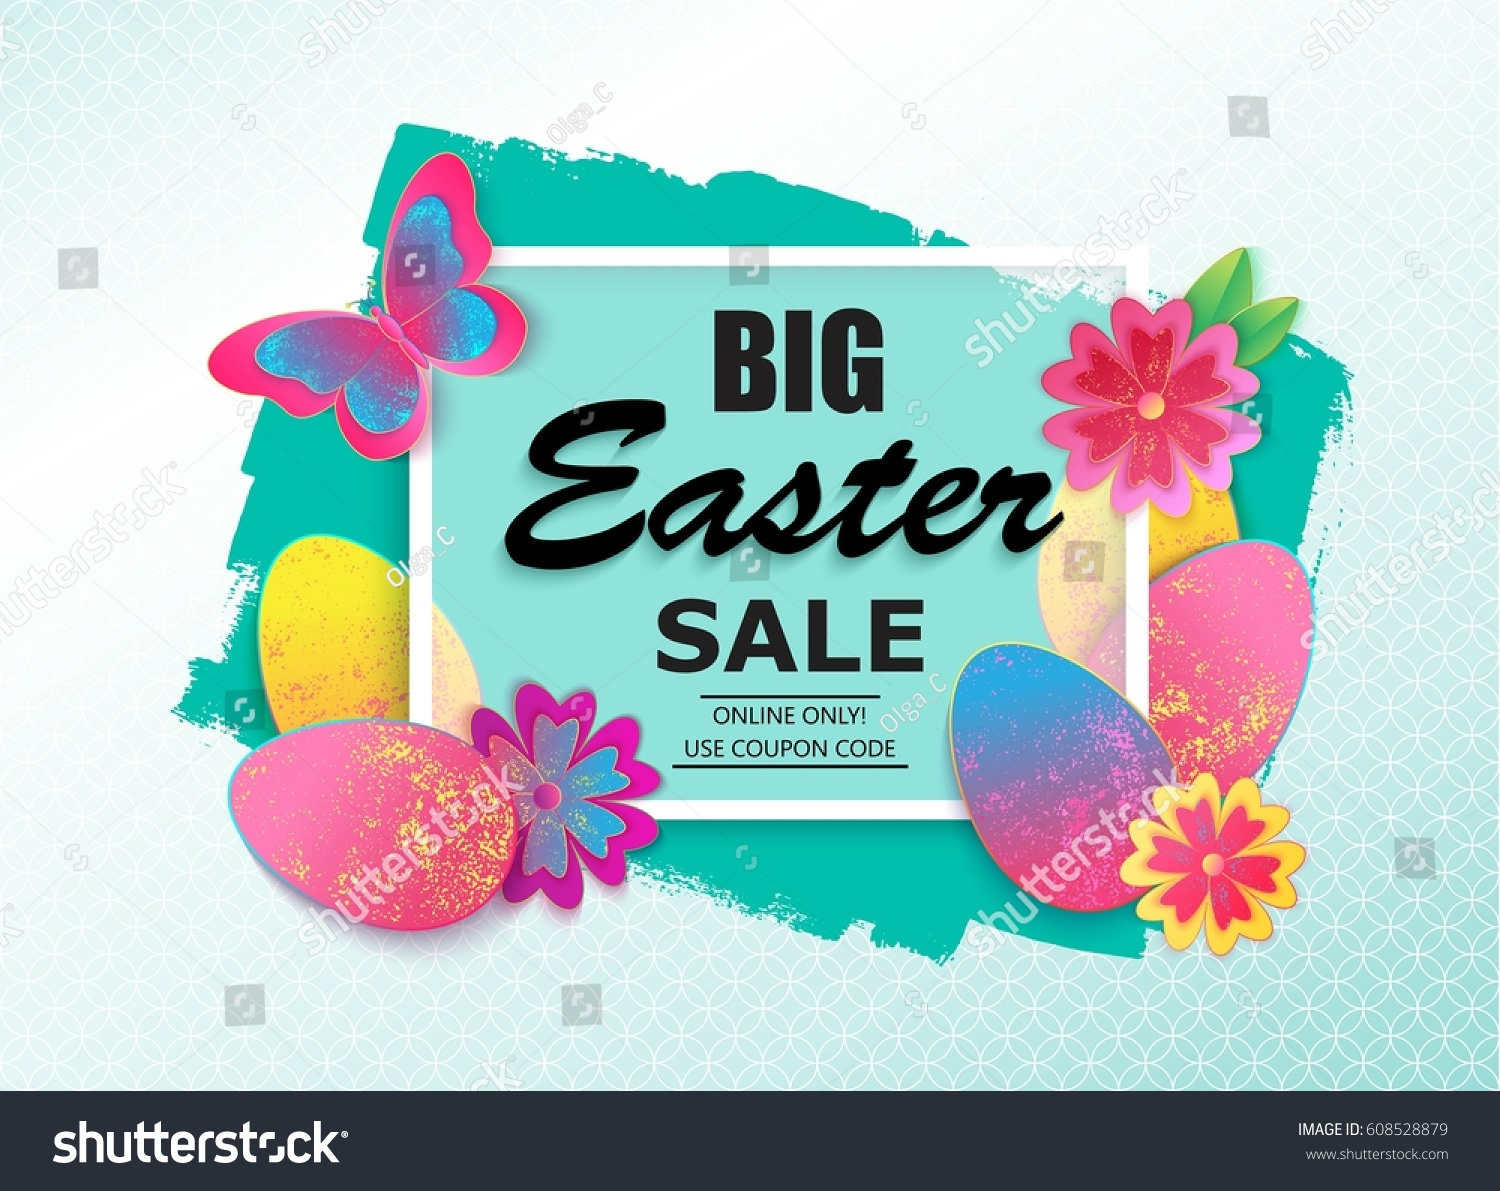 Find fantastic deals on Easter cards, Easter gifts for kids and Easter decor during Current's Easter Sale.